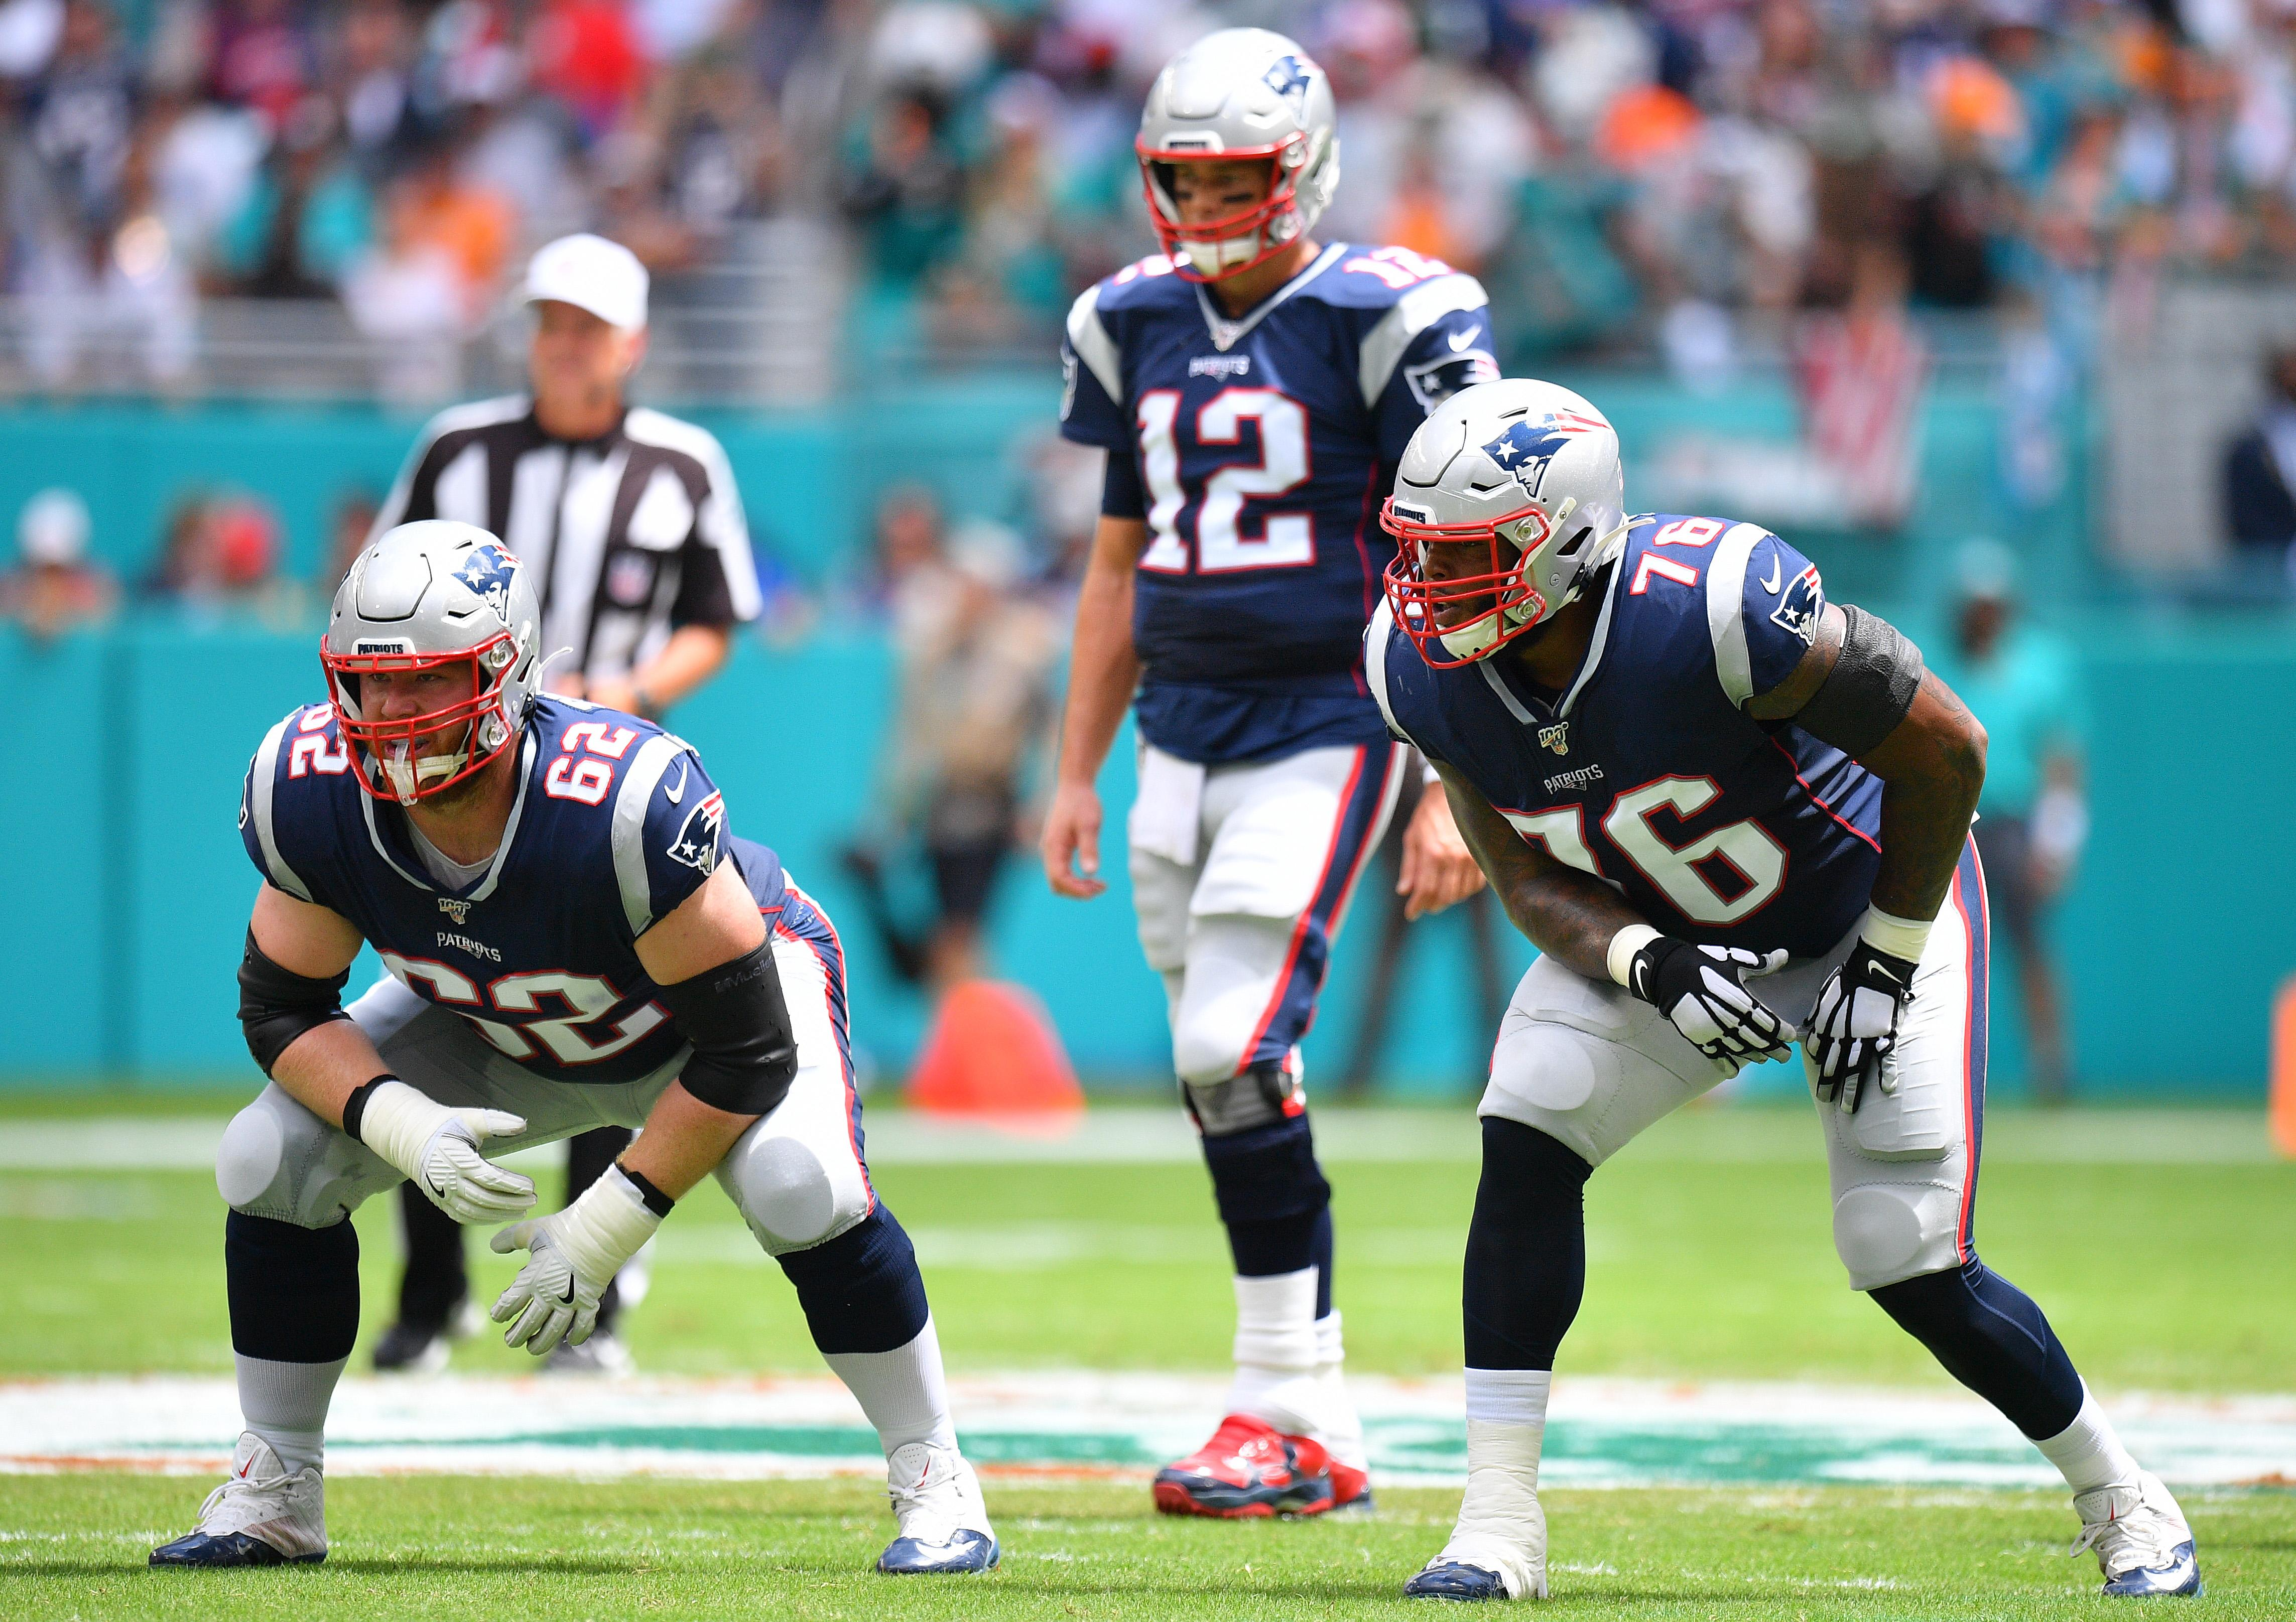 hot sale online 6b8ae 4bfed NFL: Patriots place LT Isaiah Wynn on injured reserve